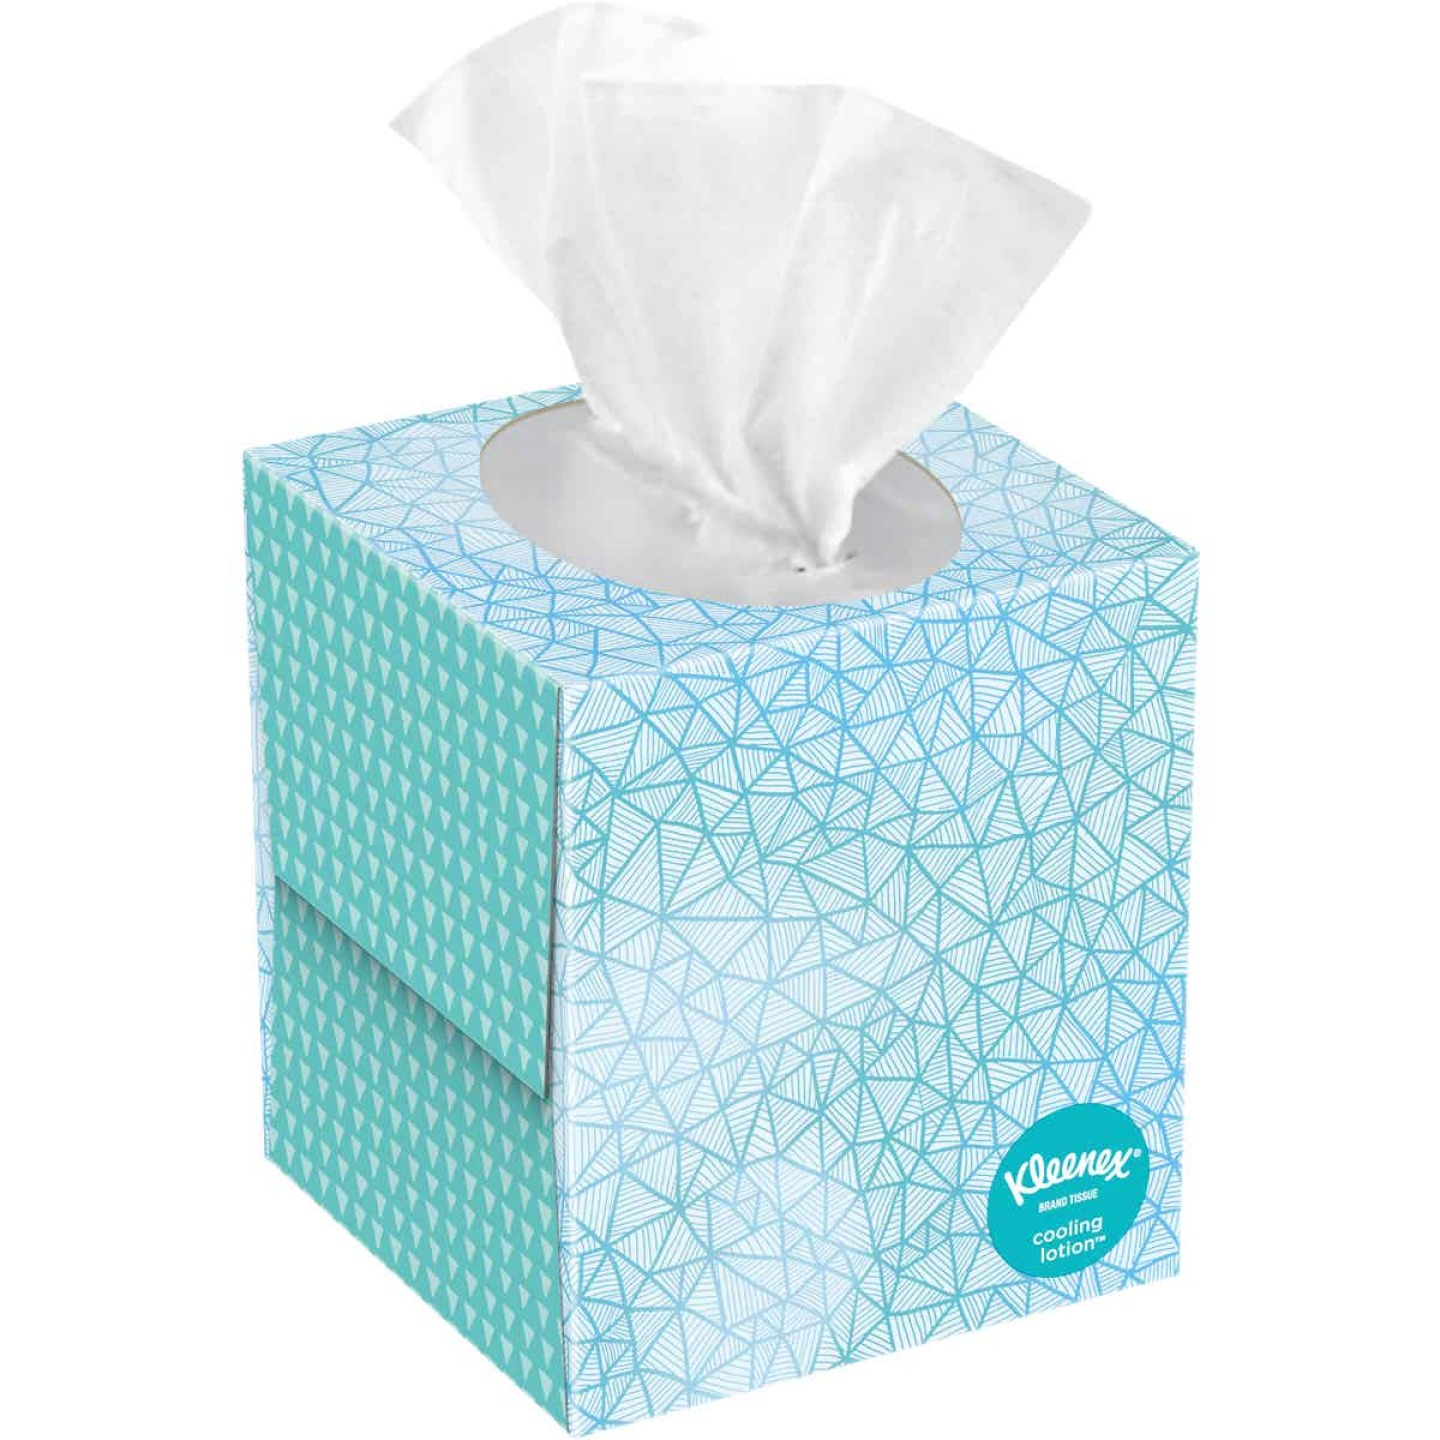 Kleenex Cooling Lotion 2-Ply Facial Tissues (45-Count) Image 1